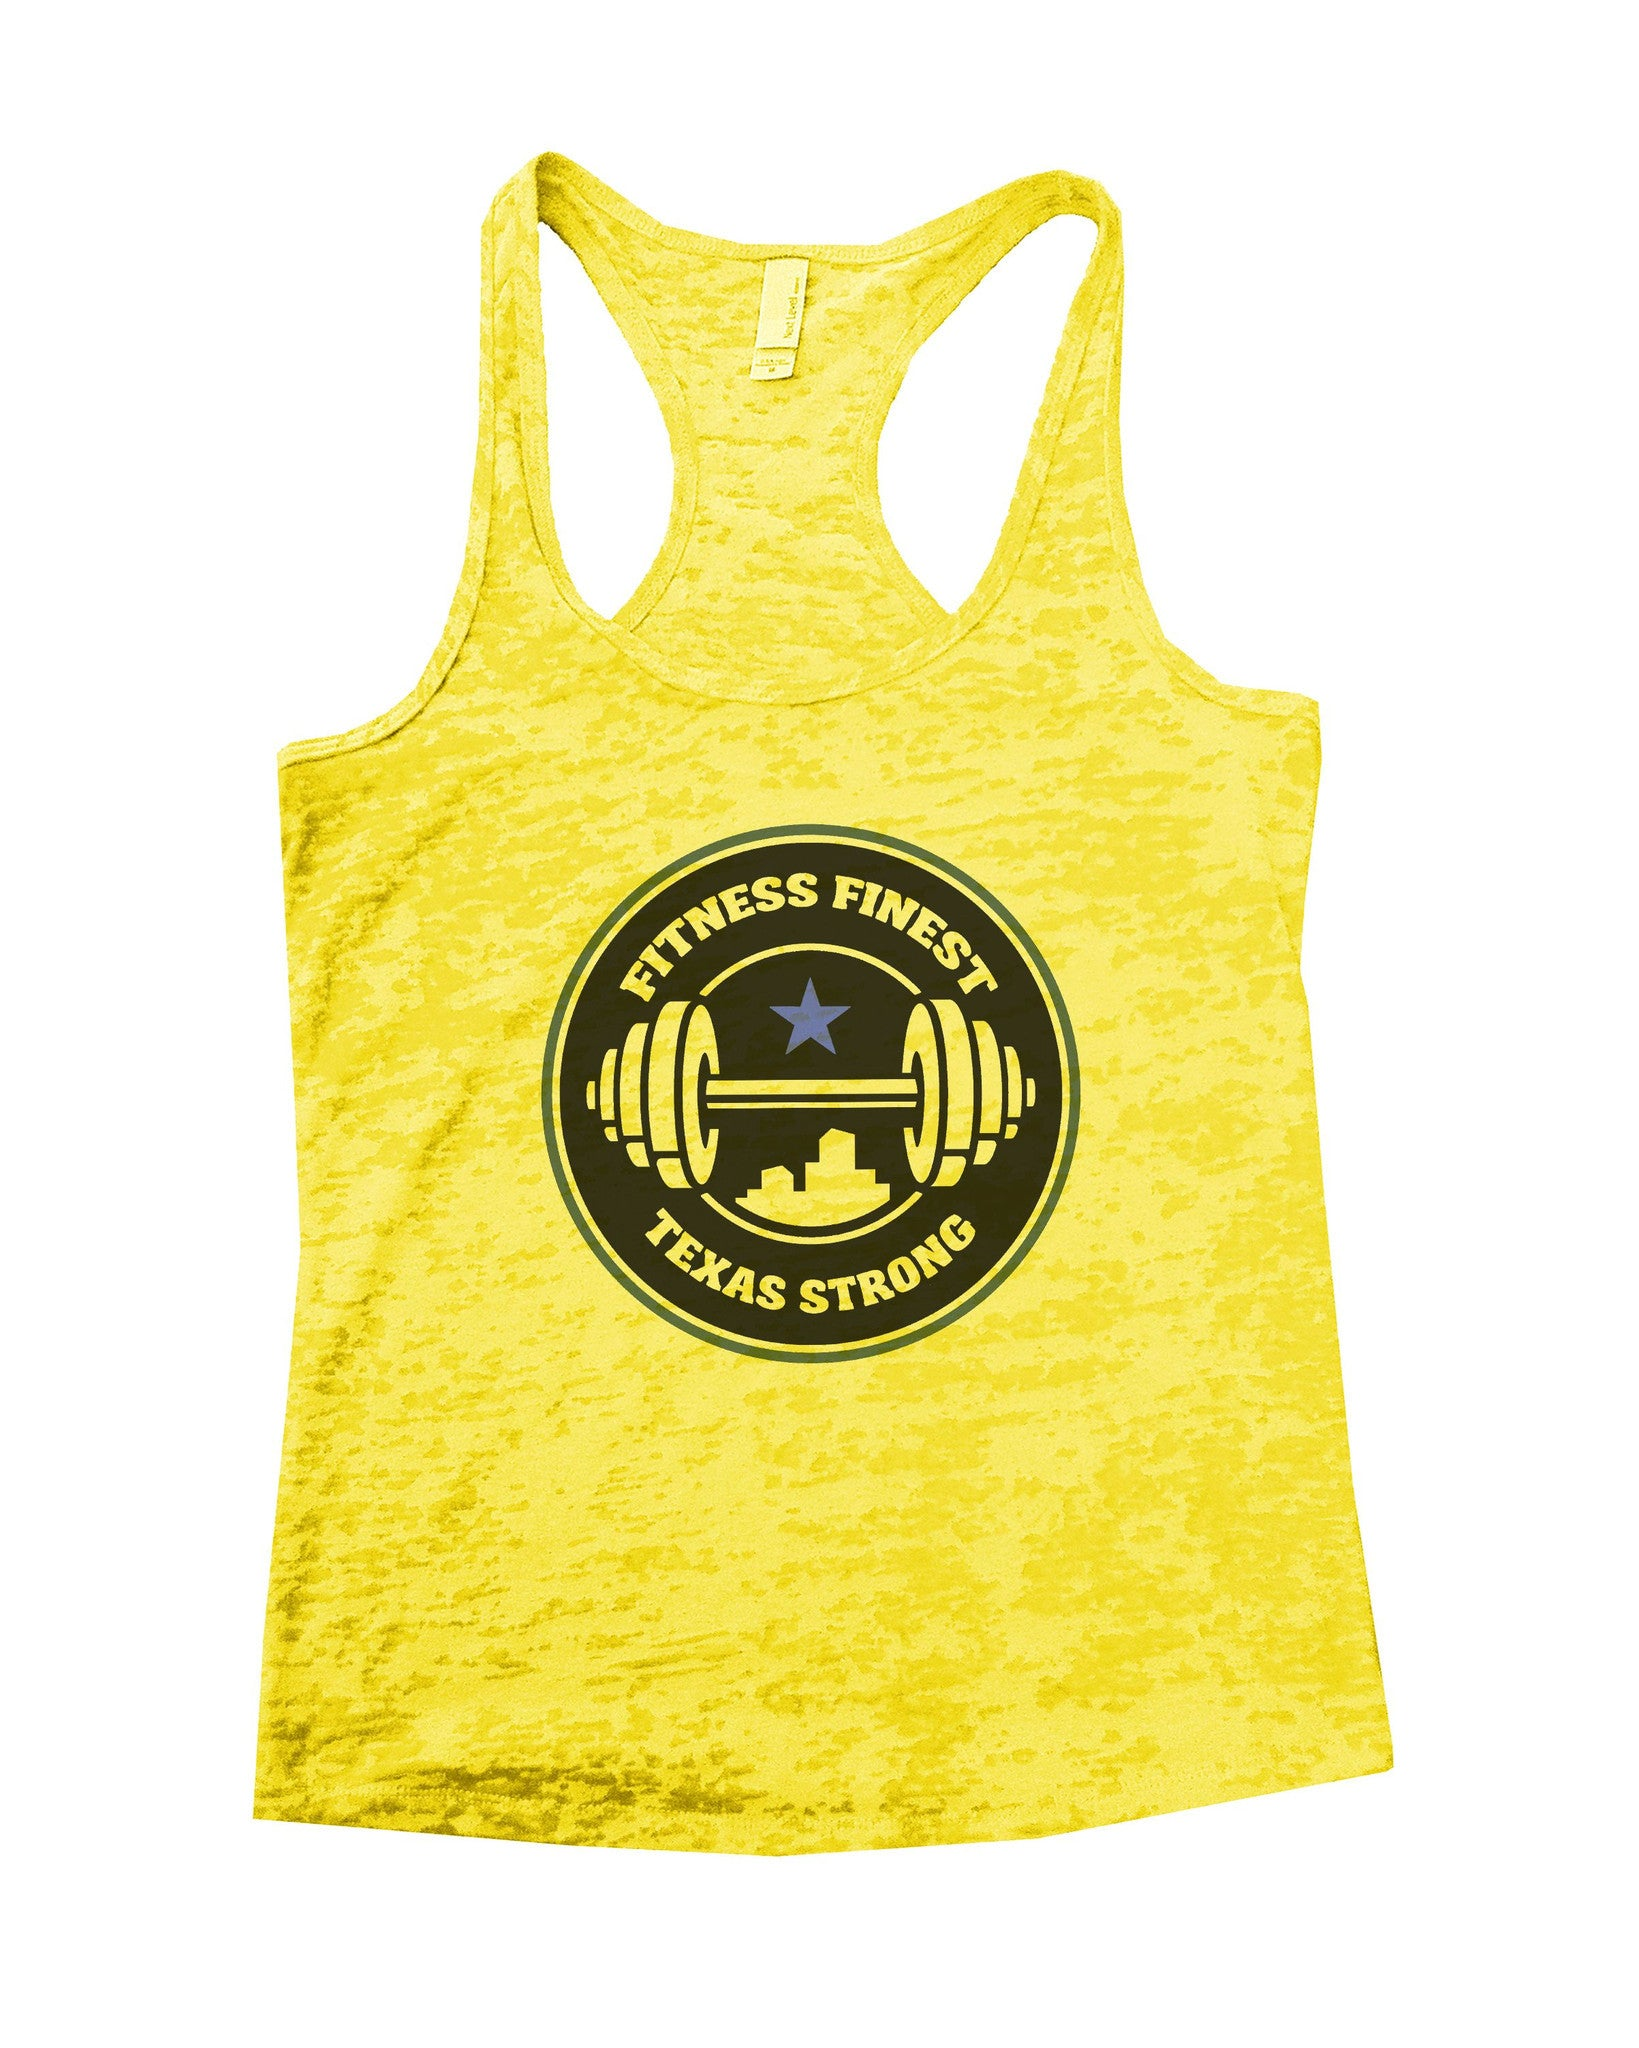 Fitness Finest Texas Strong Burnout Tank Top By BurnoutTankTops.com - 778 - Funny Shirts Tank Tops Burnouts and Triblends  - 6